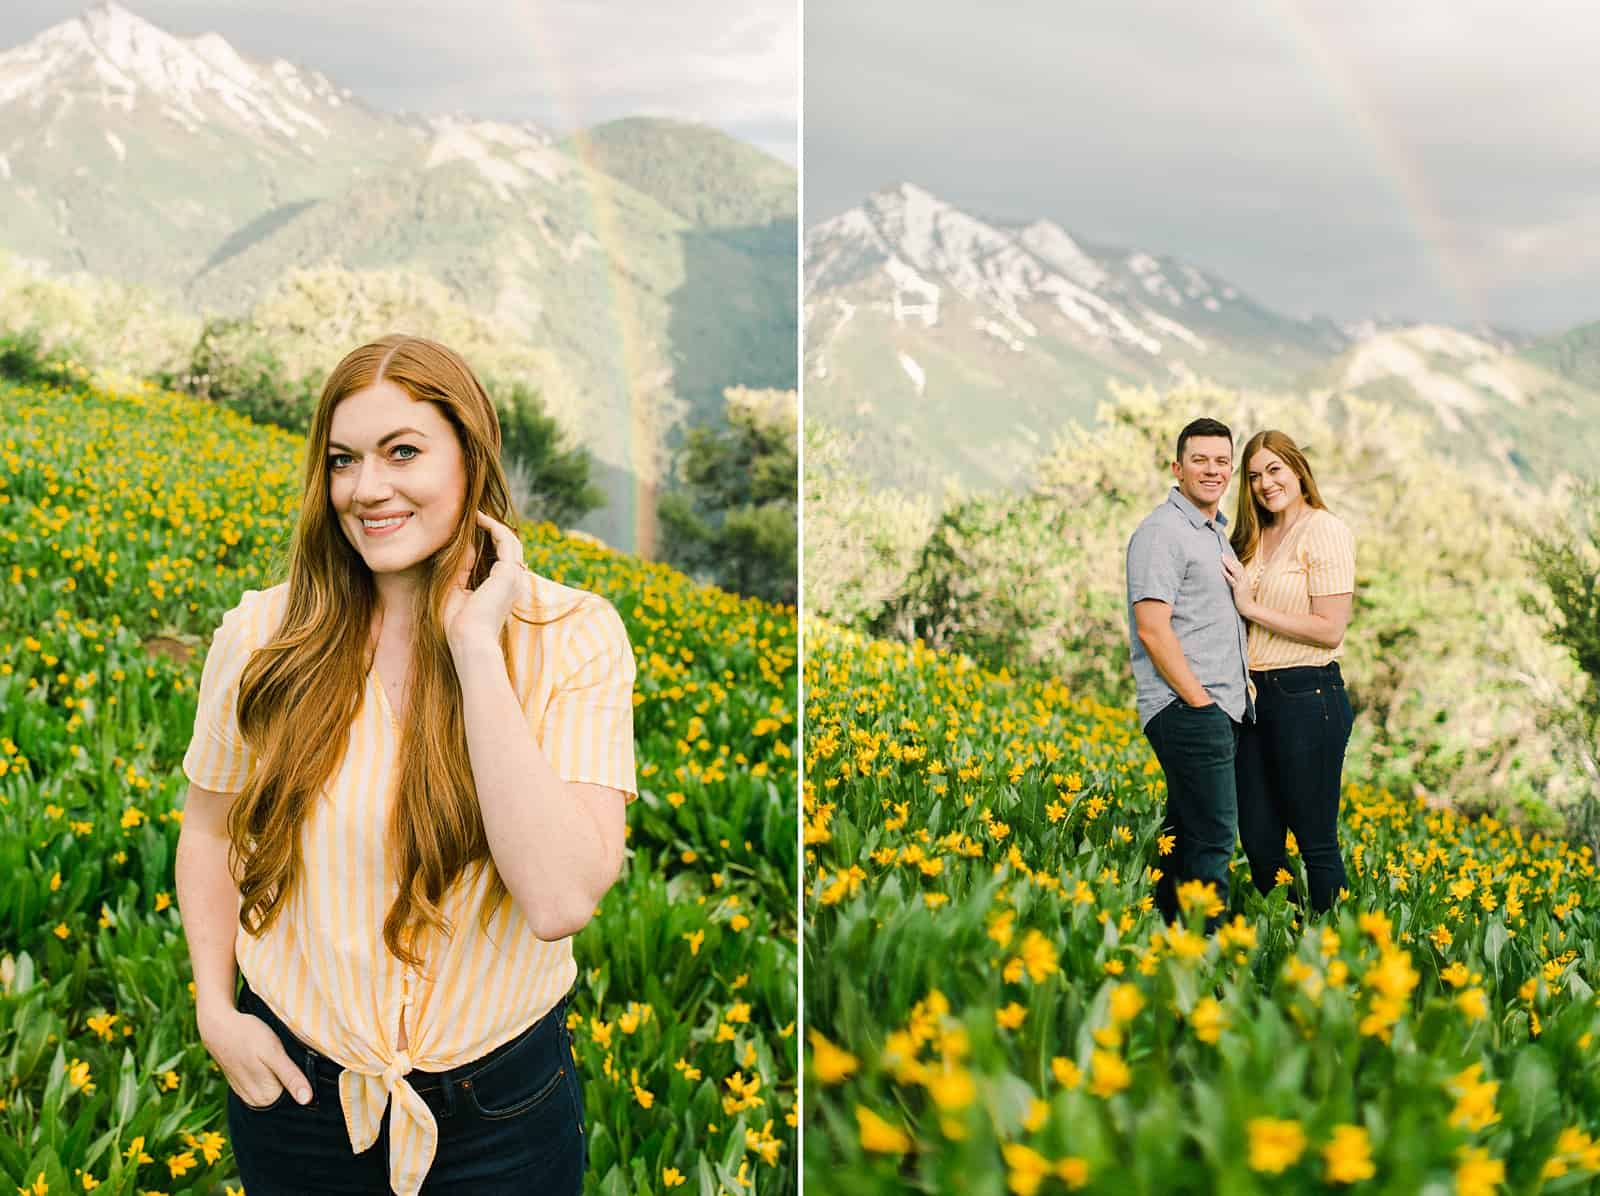 Provo Canyon wildflowers field engagement session, Utah wedding photography, engaged couple in yellow flowers and mountains with rainbow in background, bride in peach shirt with front tie and jeans